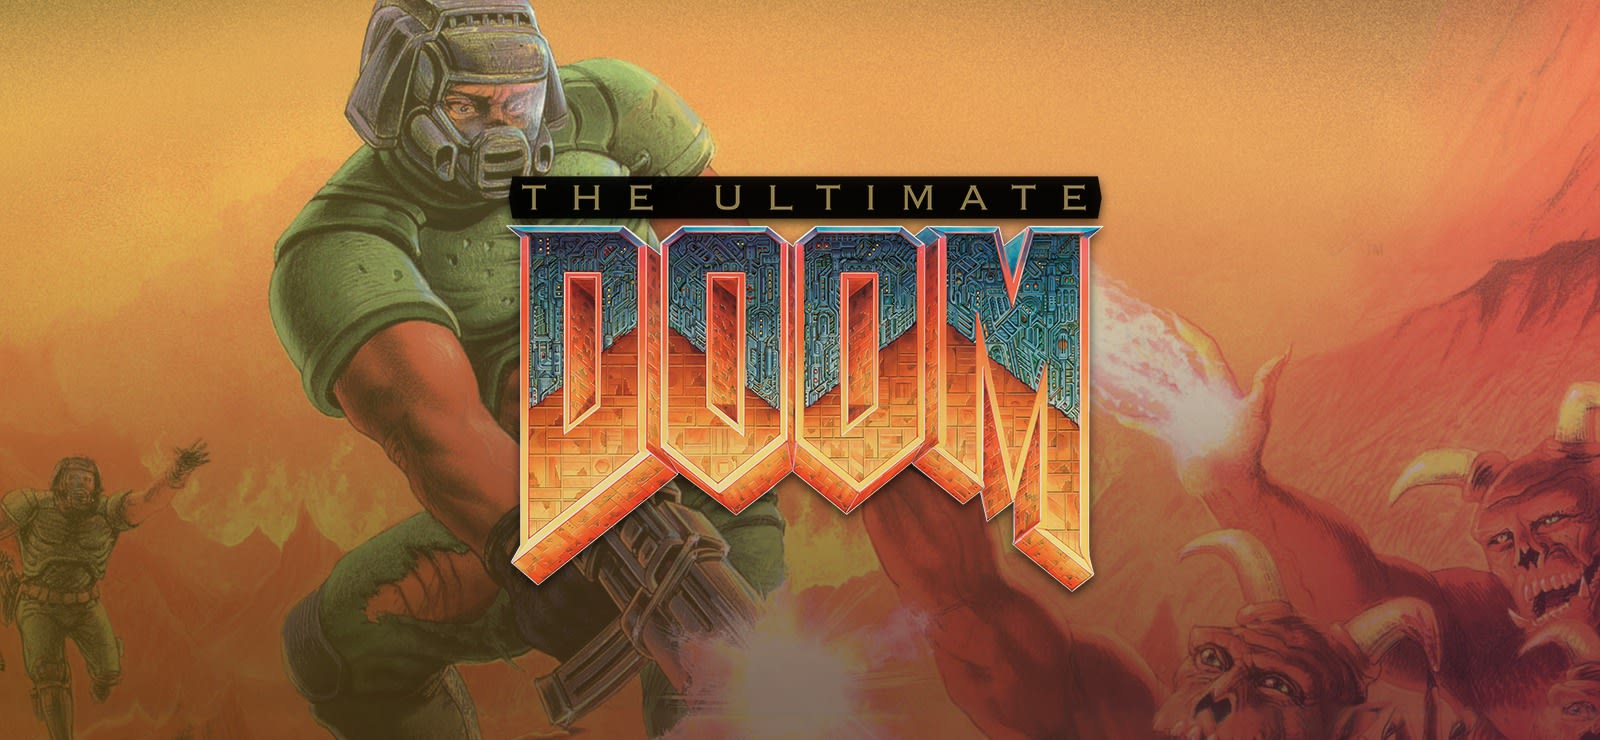 The Ultimate Doom varies-with-device